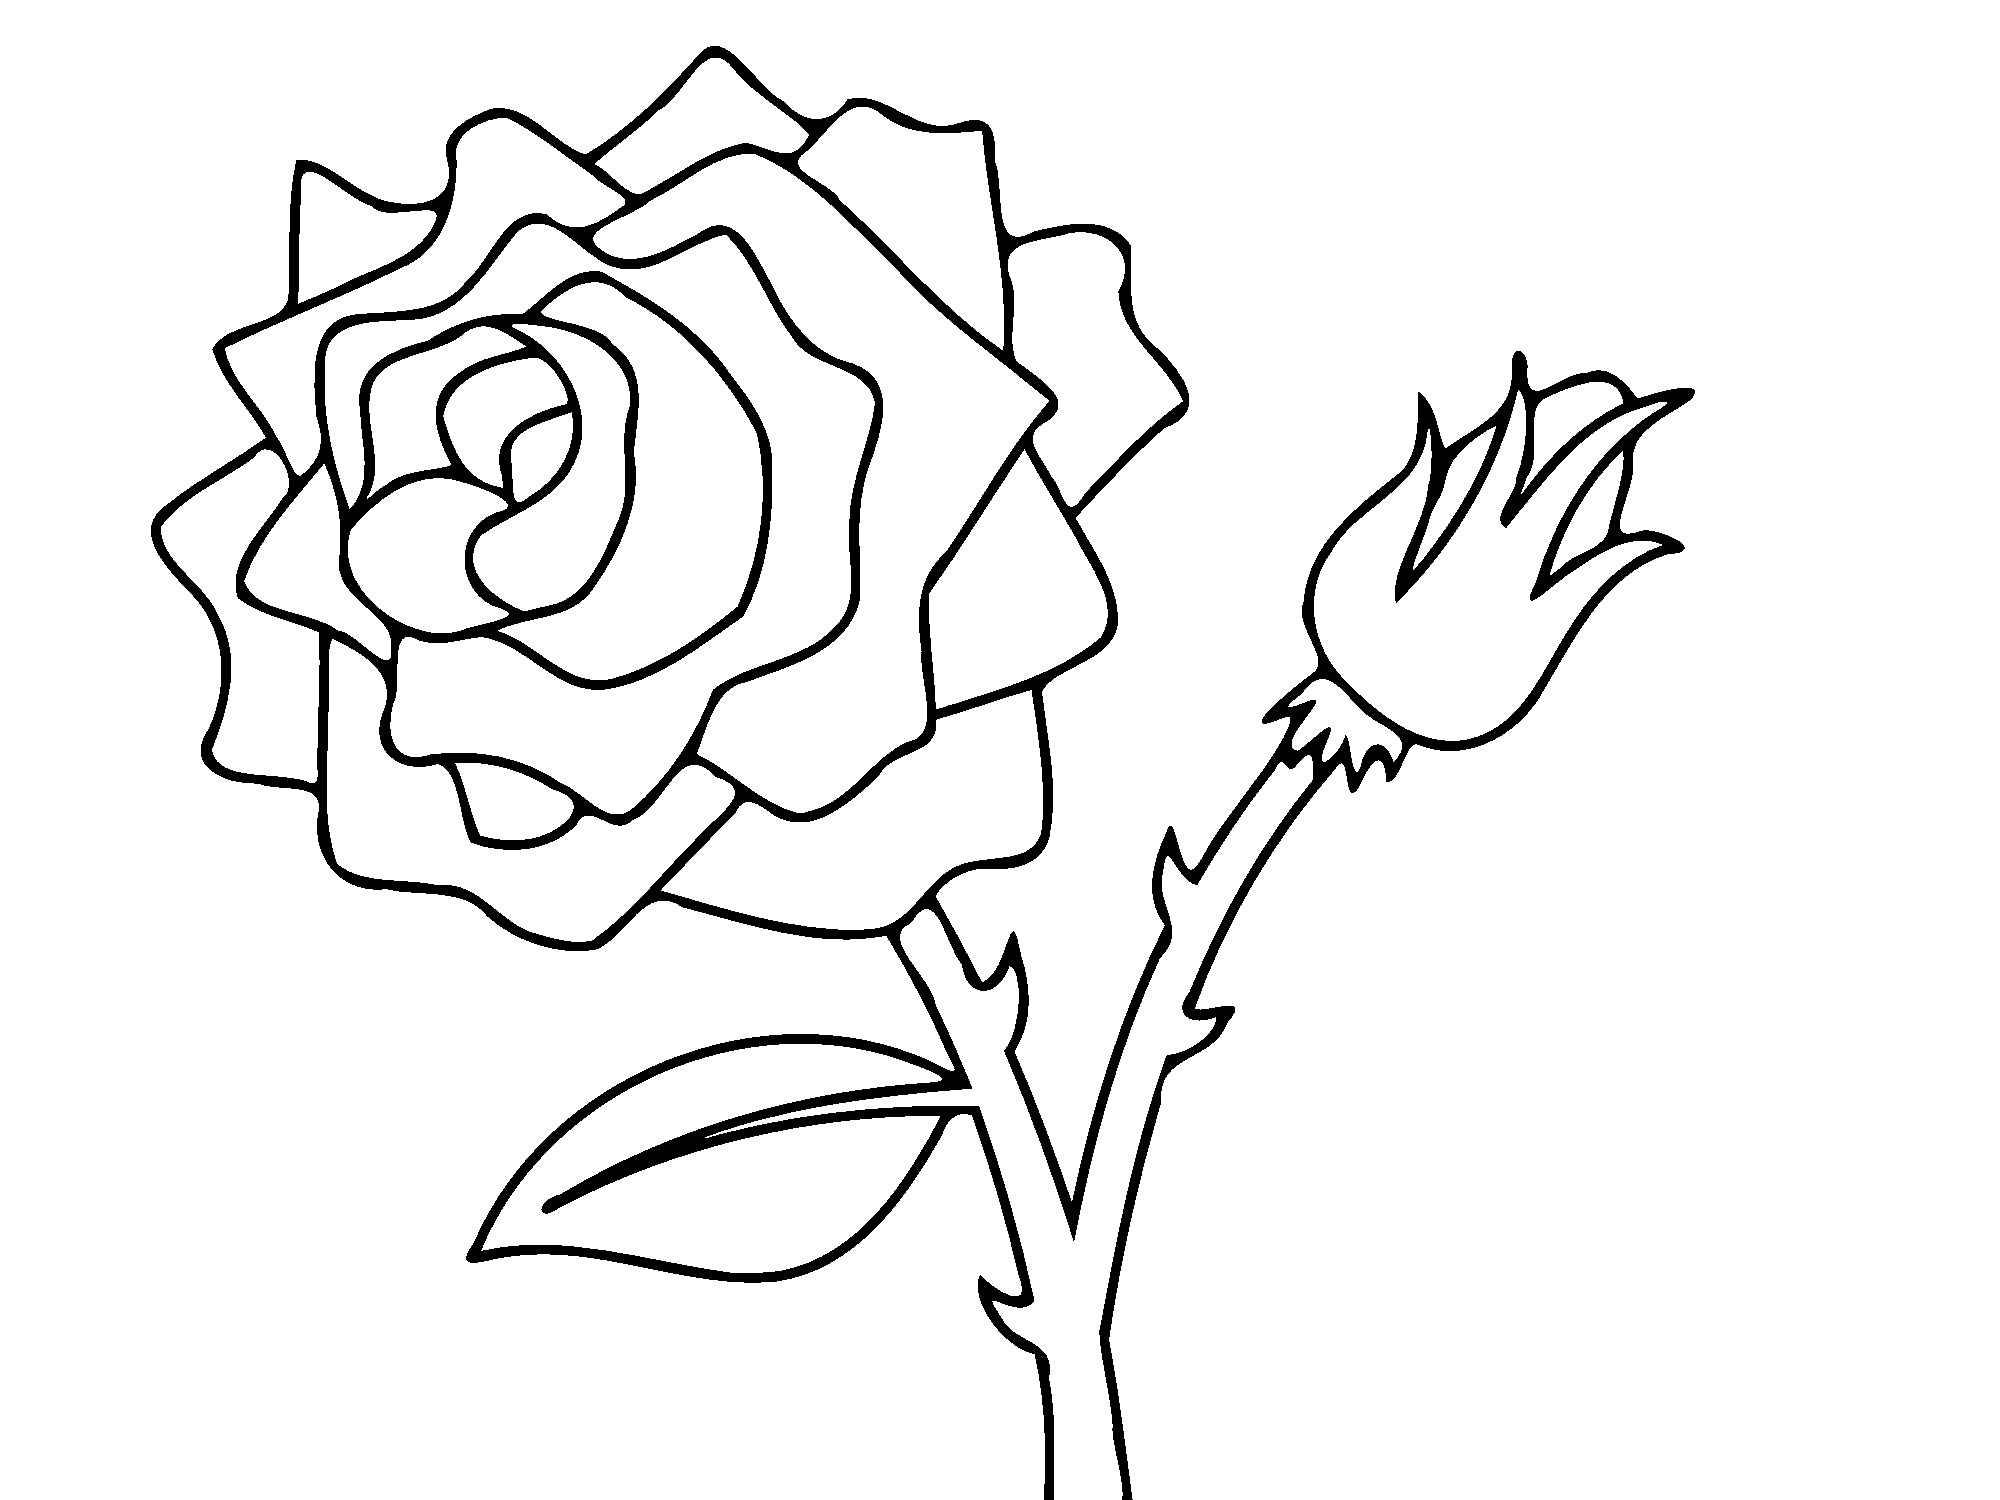 Garden Flowers Drawing at GetDrawings.com | Free for personal use ...